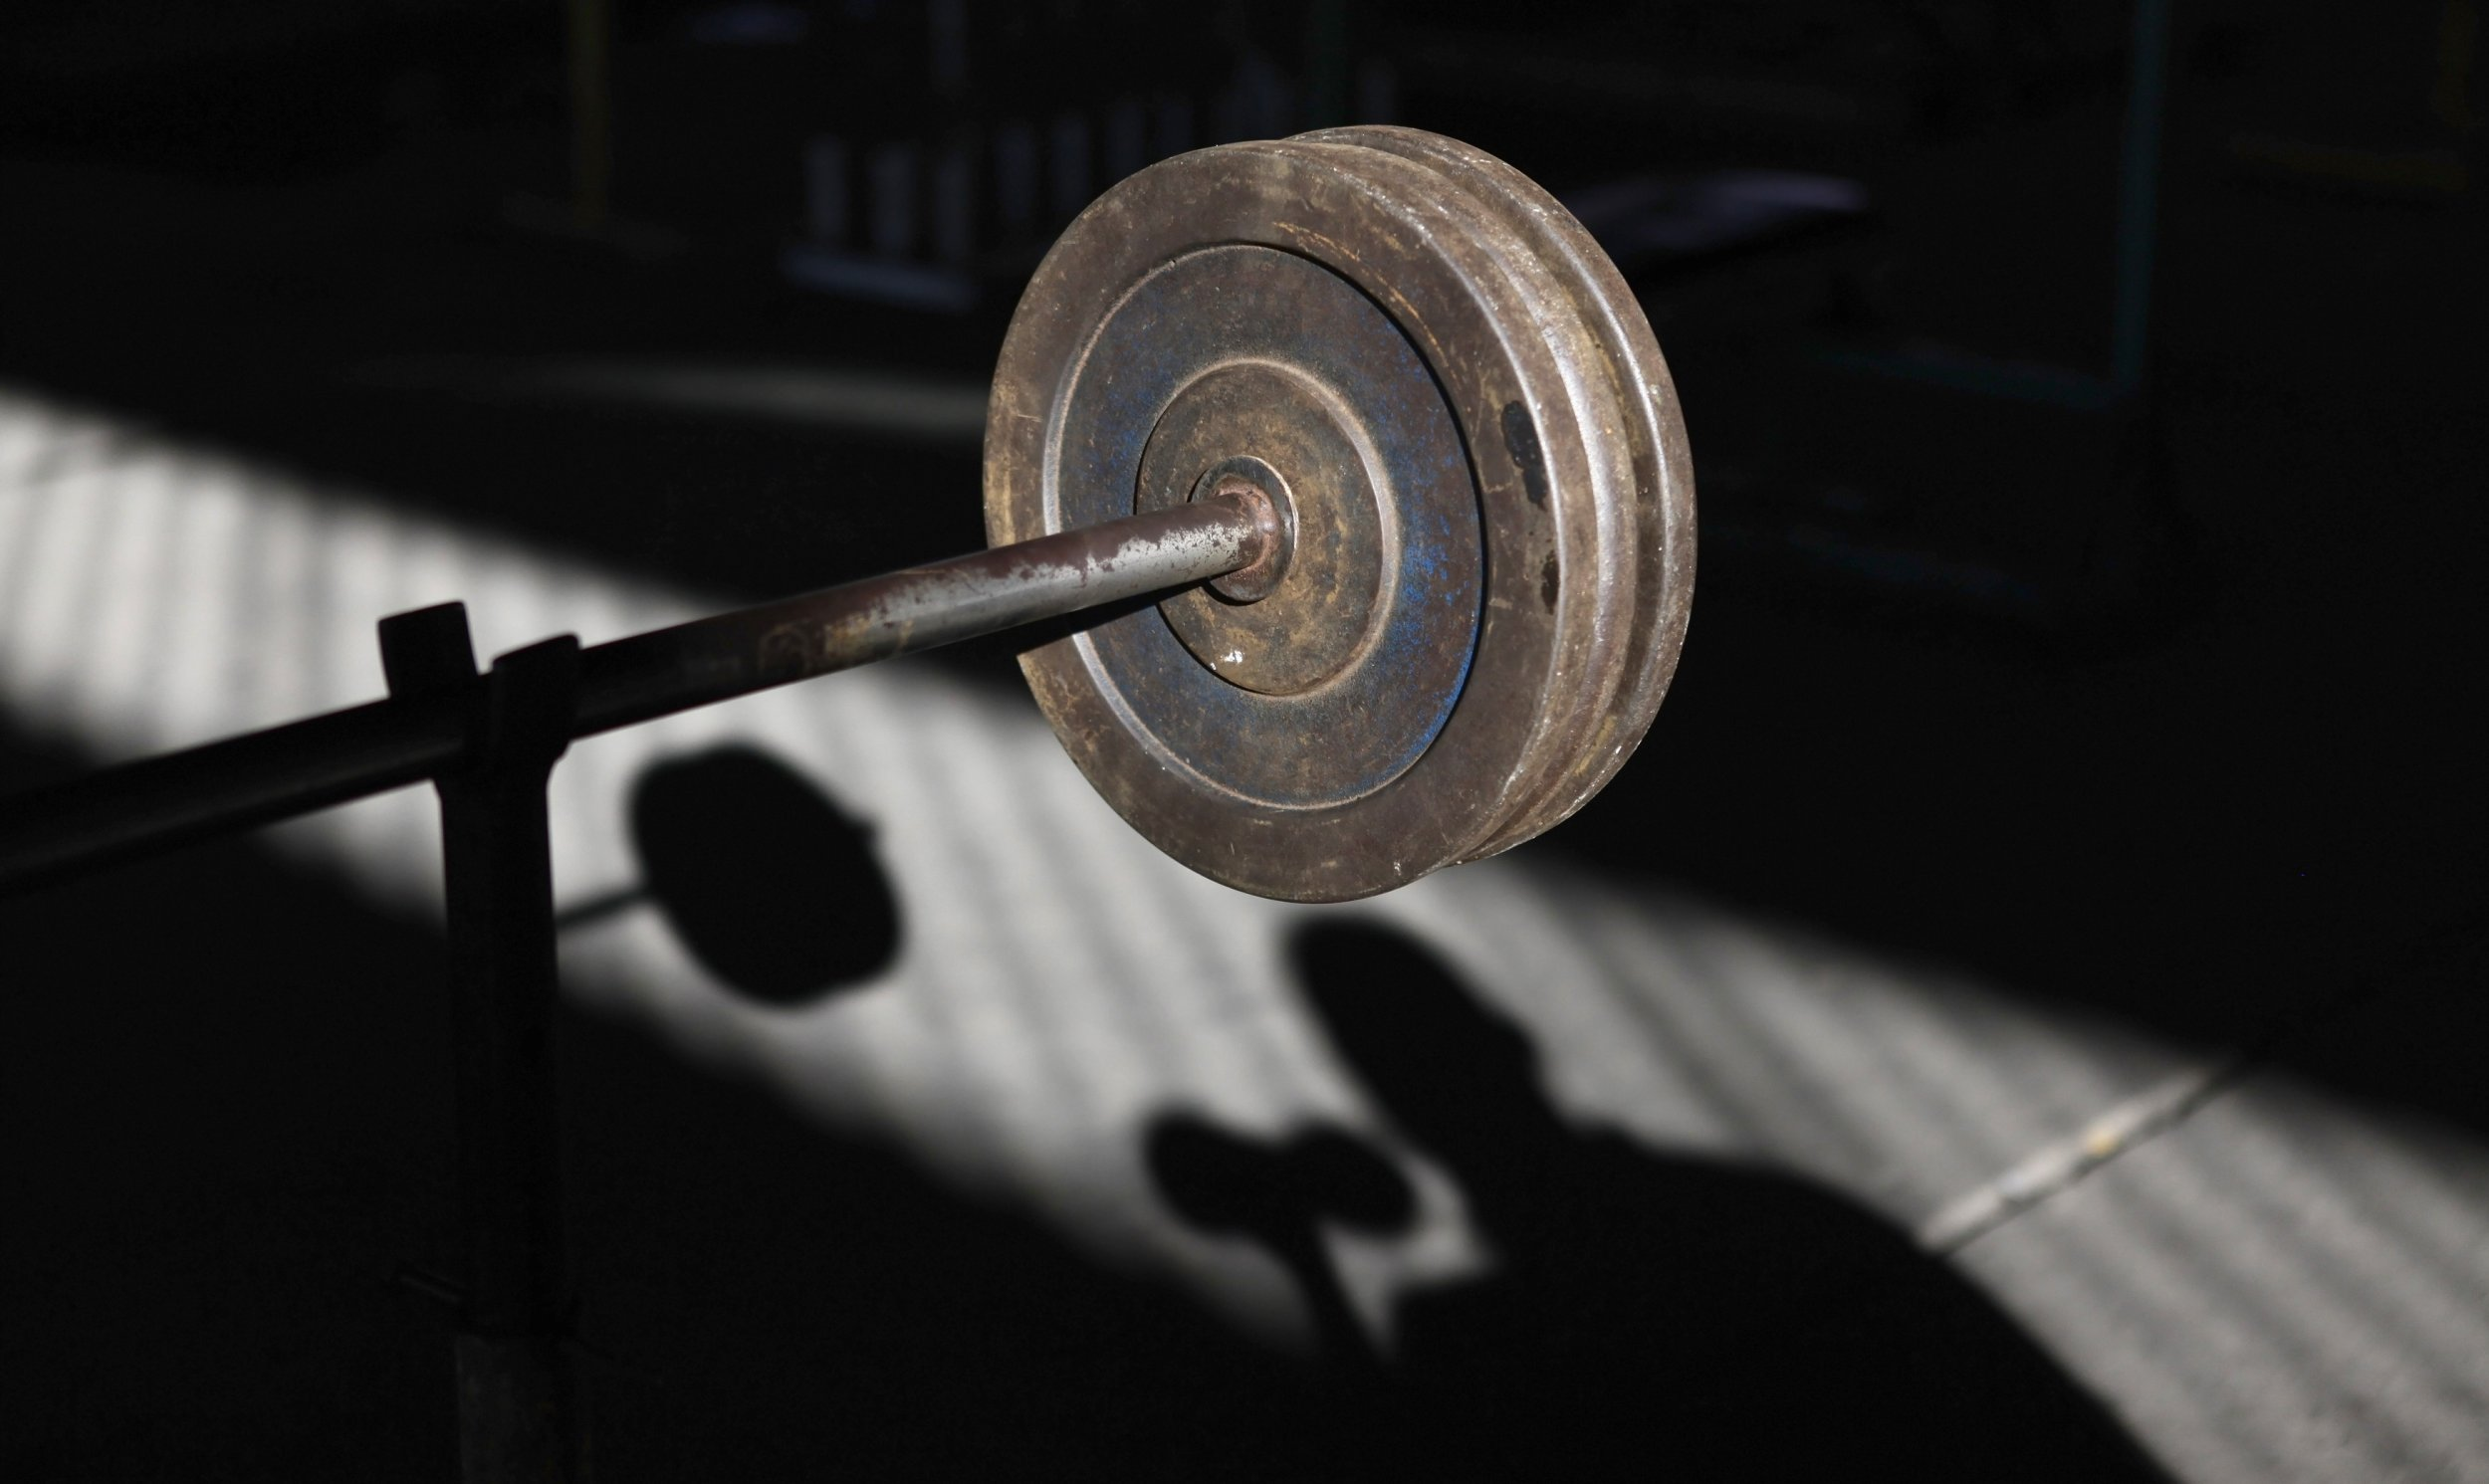 Weights are seen near the shadow of a man at a gym